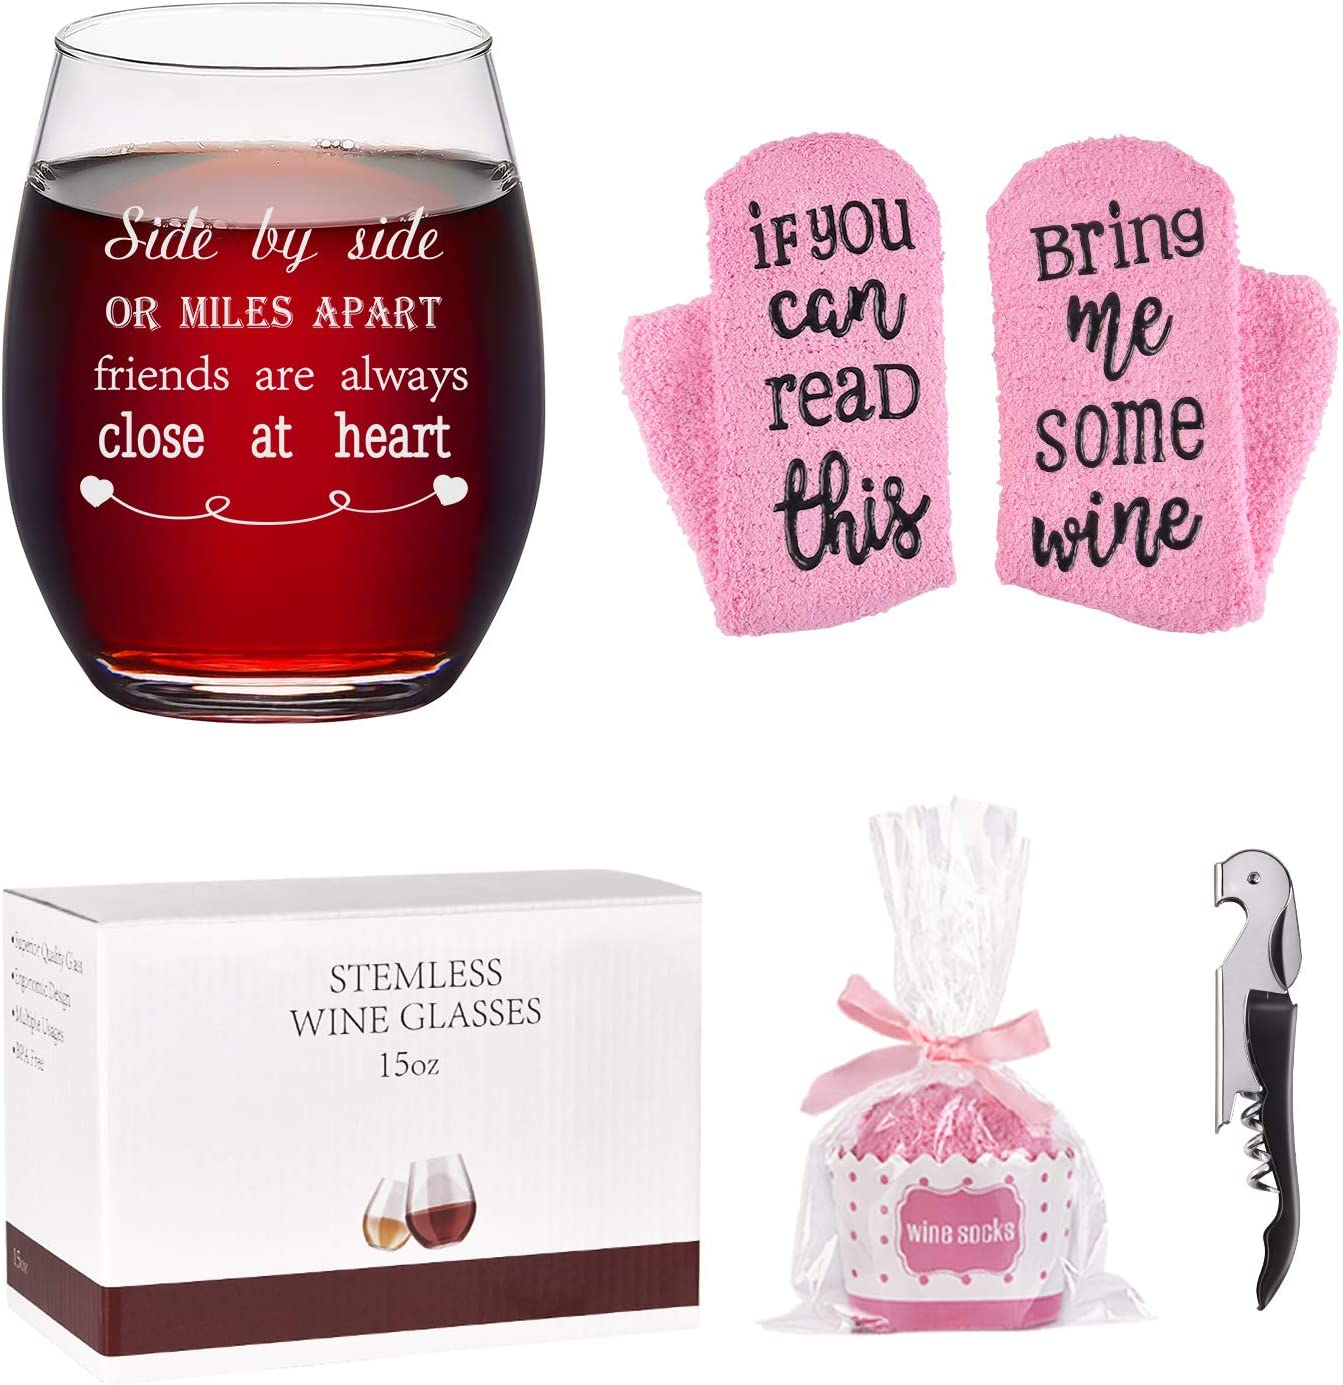 Friend Wine Glass with Cupcake Wine Socks Gift Set, Side By Side or Miles Apart Friends Are Always Close at Heart Stemless Wine Glass 15Oz - Friend Gifts for Women, Girls, Sisters, Best Friends